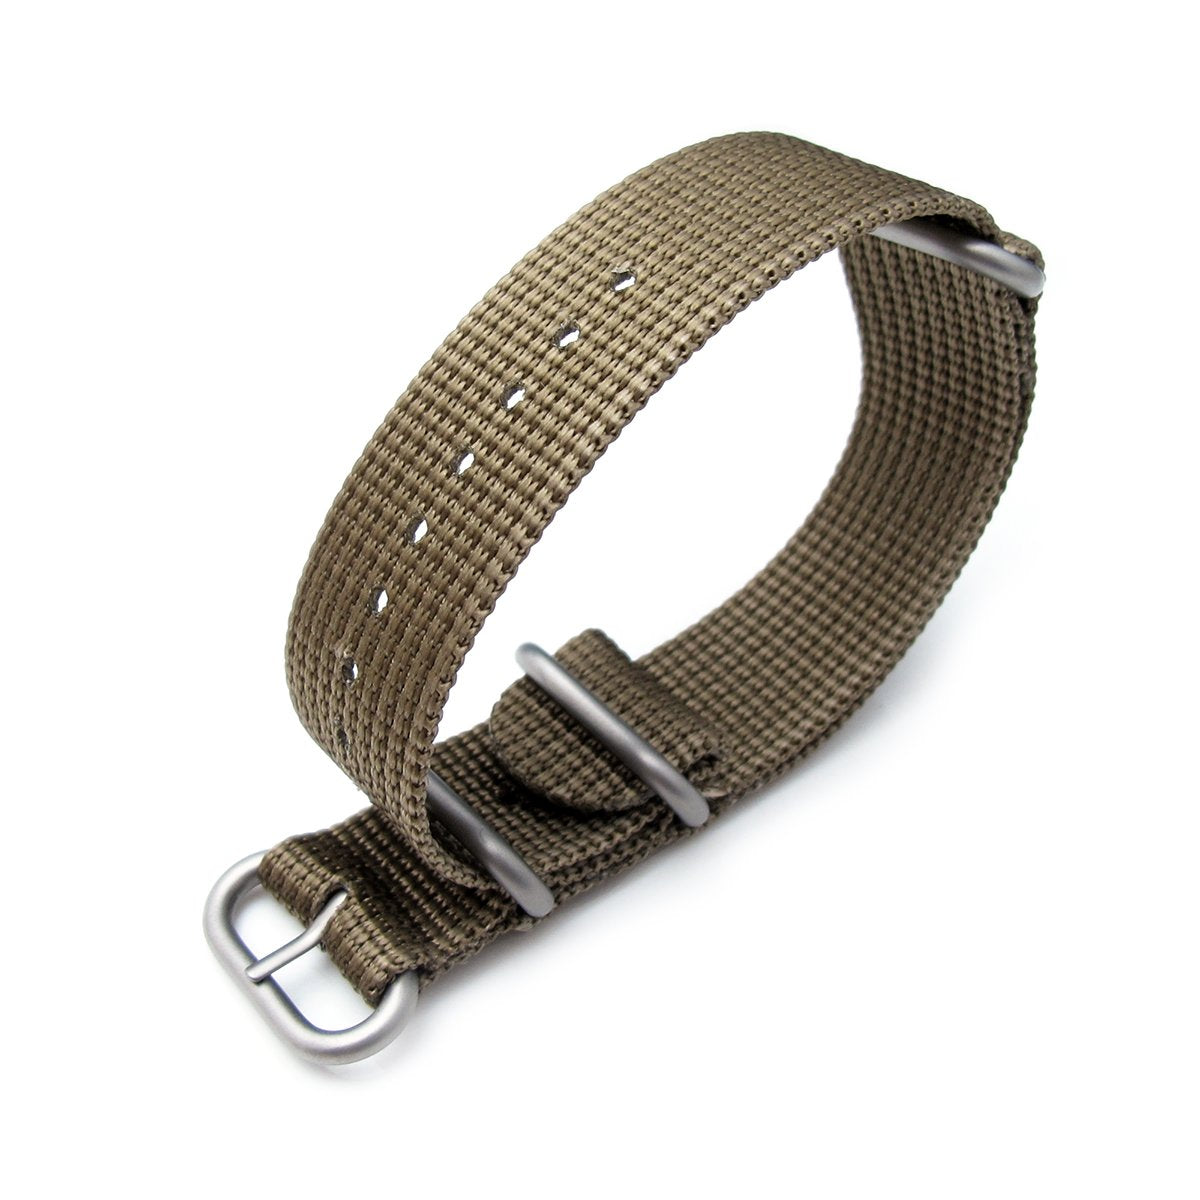 MiLTAT 20mm 22mm or 24mm 3 Rings Zulu military watch strap 3D woven nylon armband Khaki Brushed Hardware Strapcode Watch Bands